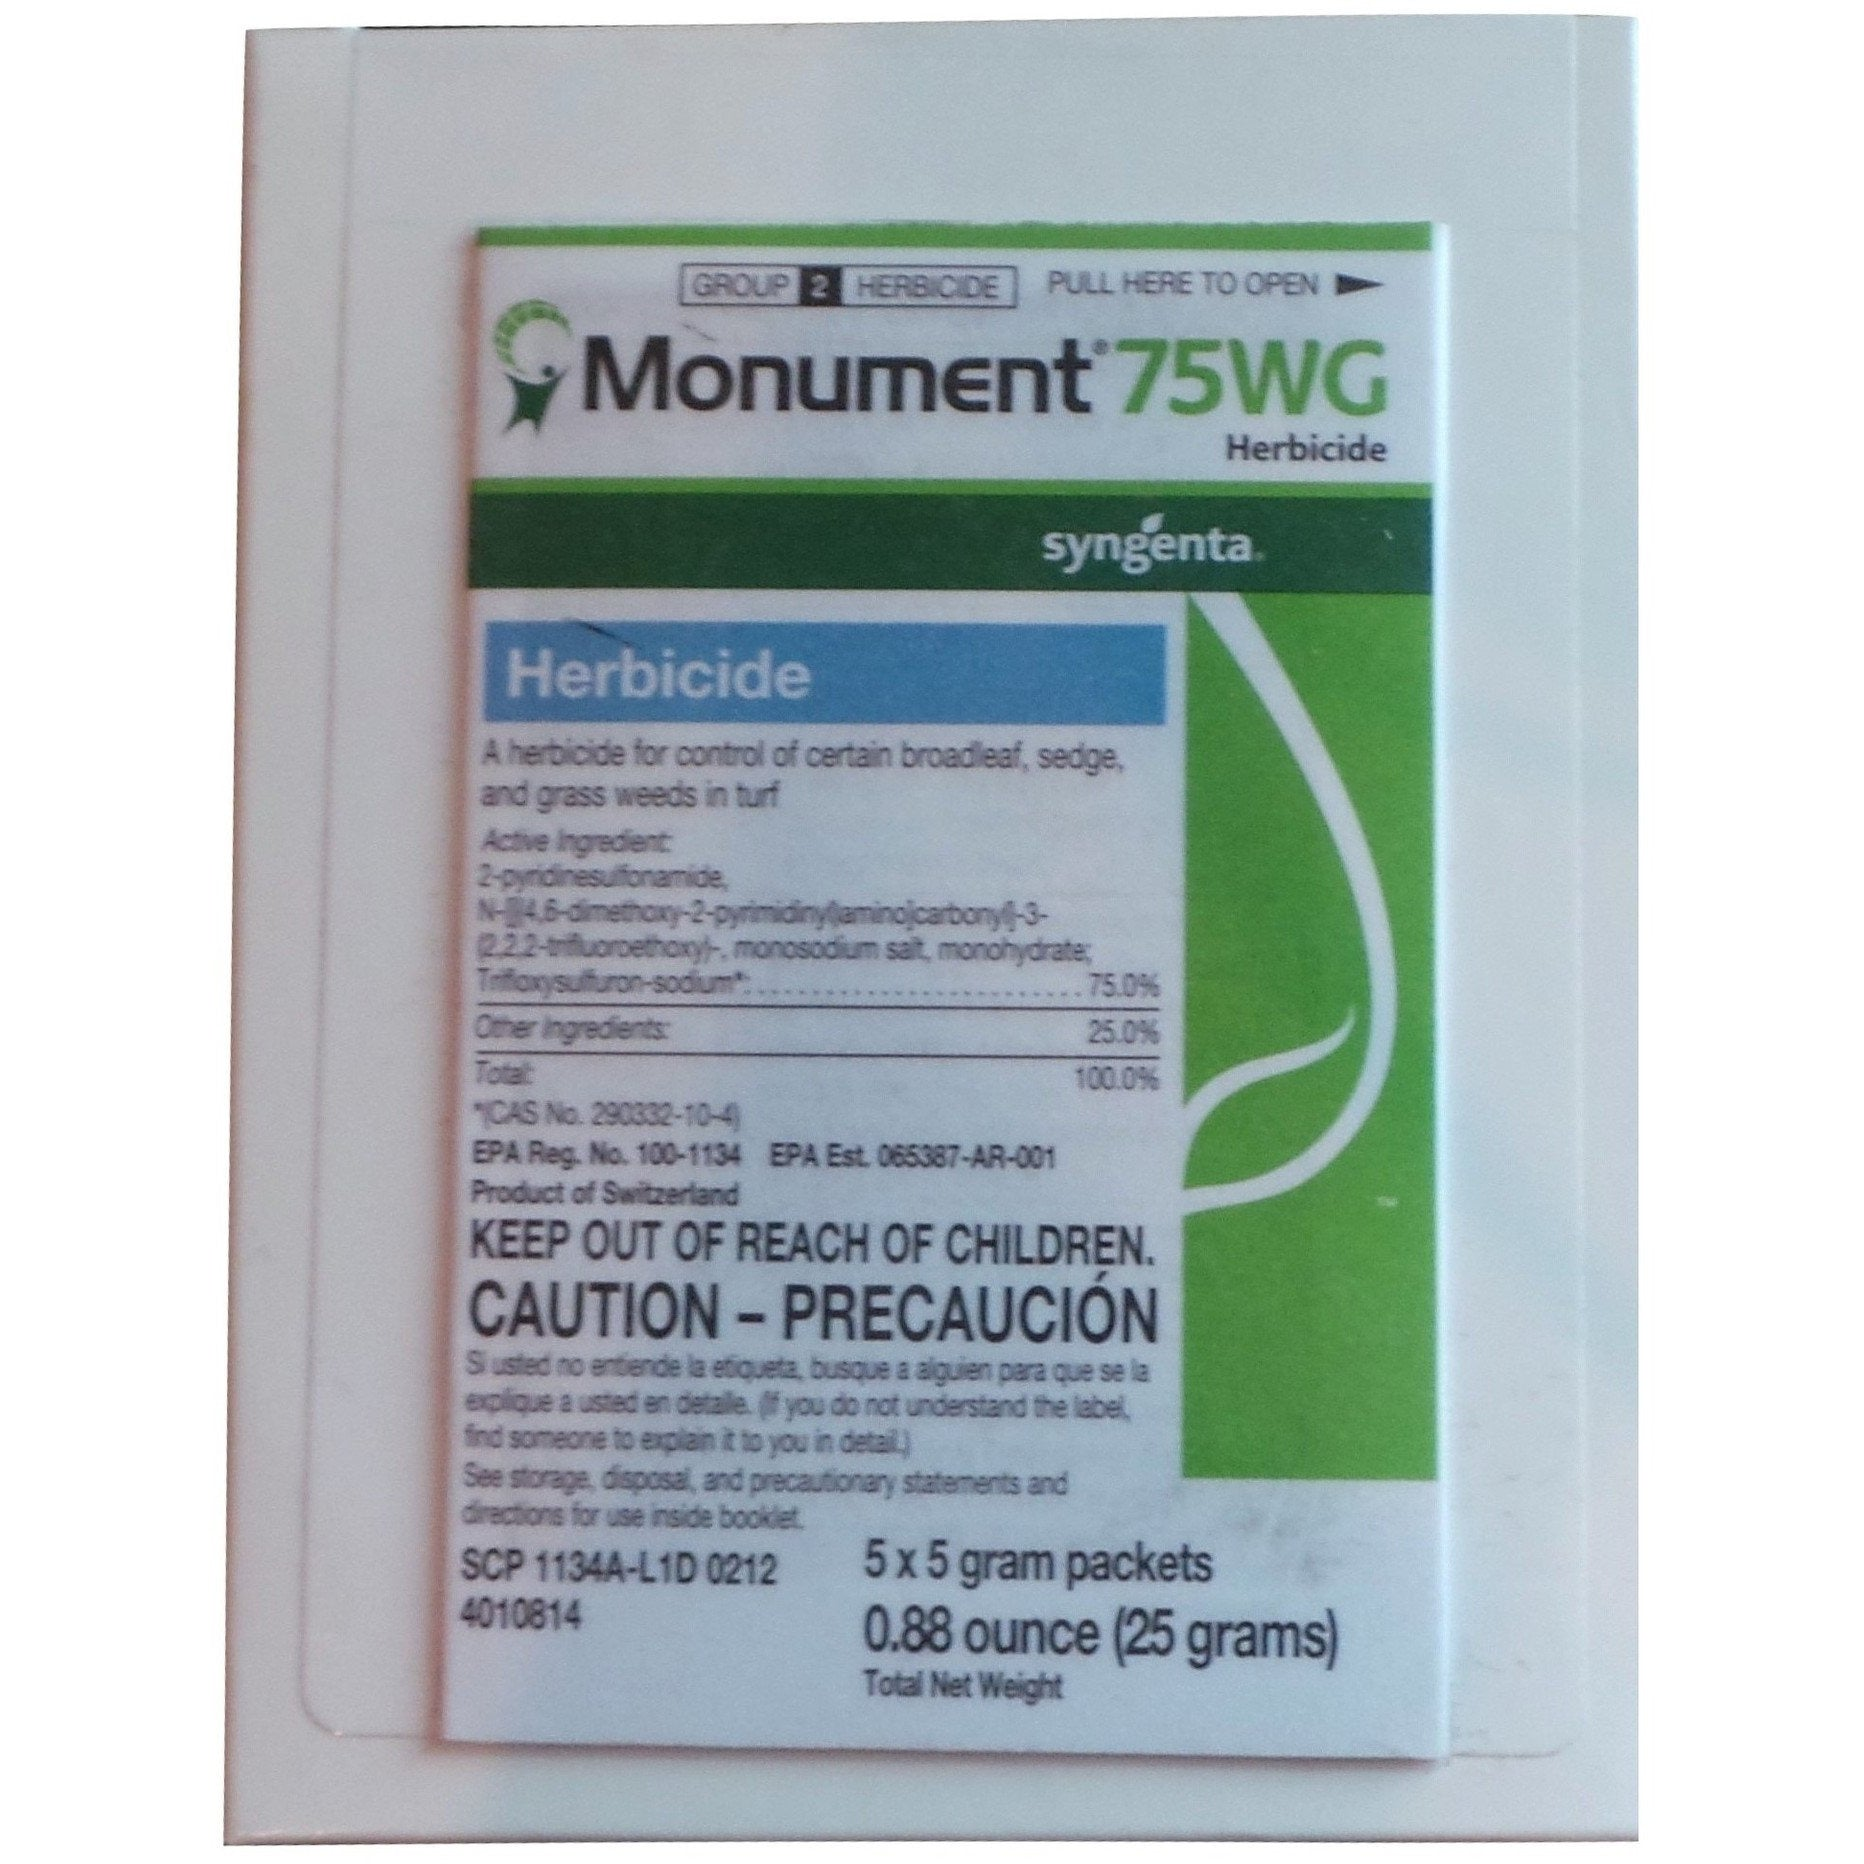 Monument 75WG Herbicide - 5 x 5 gram packets